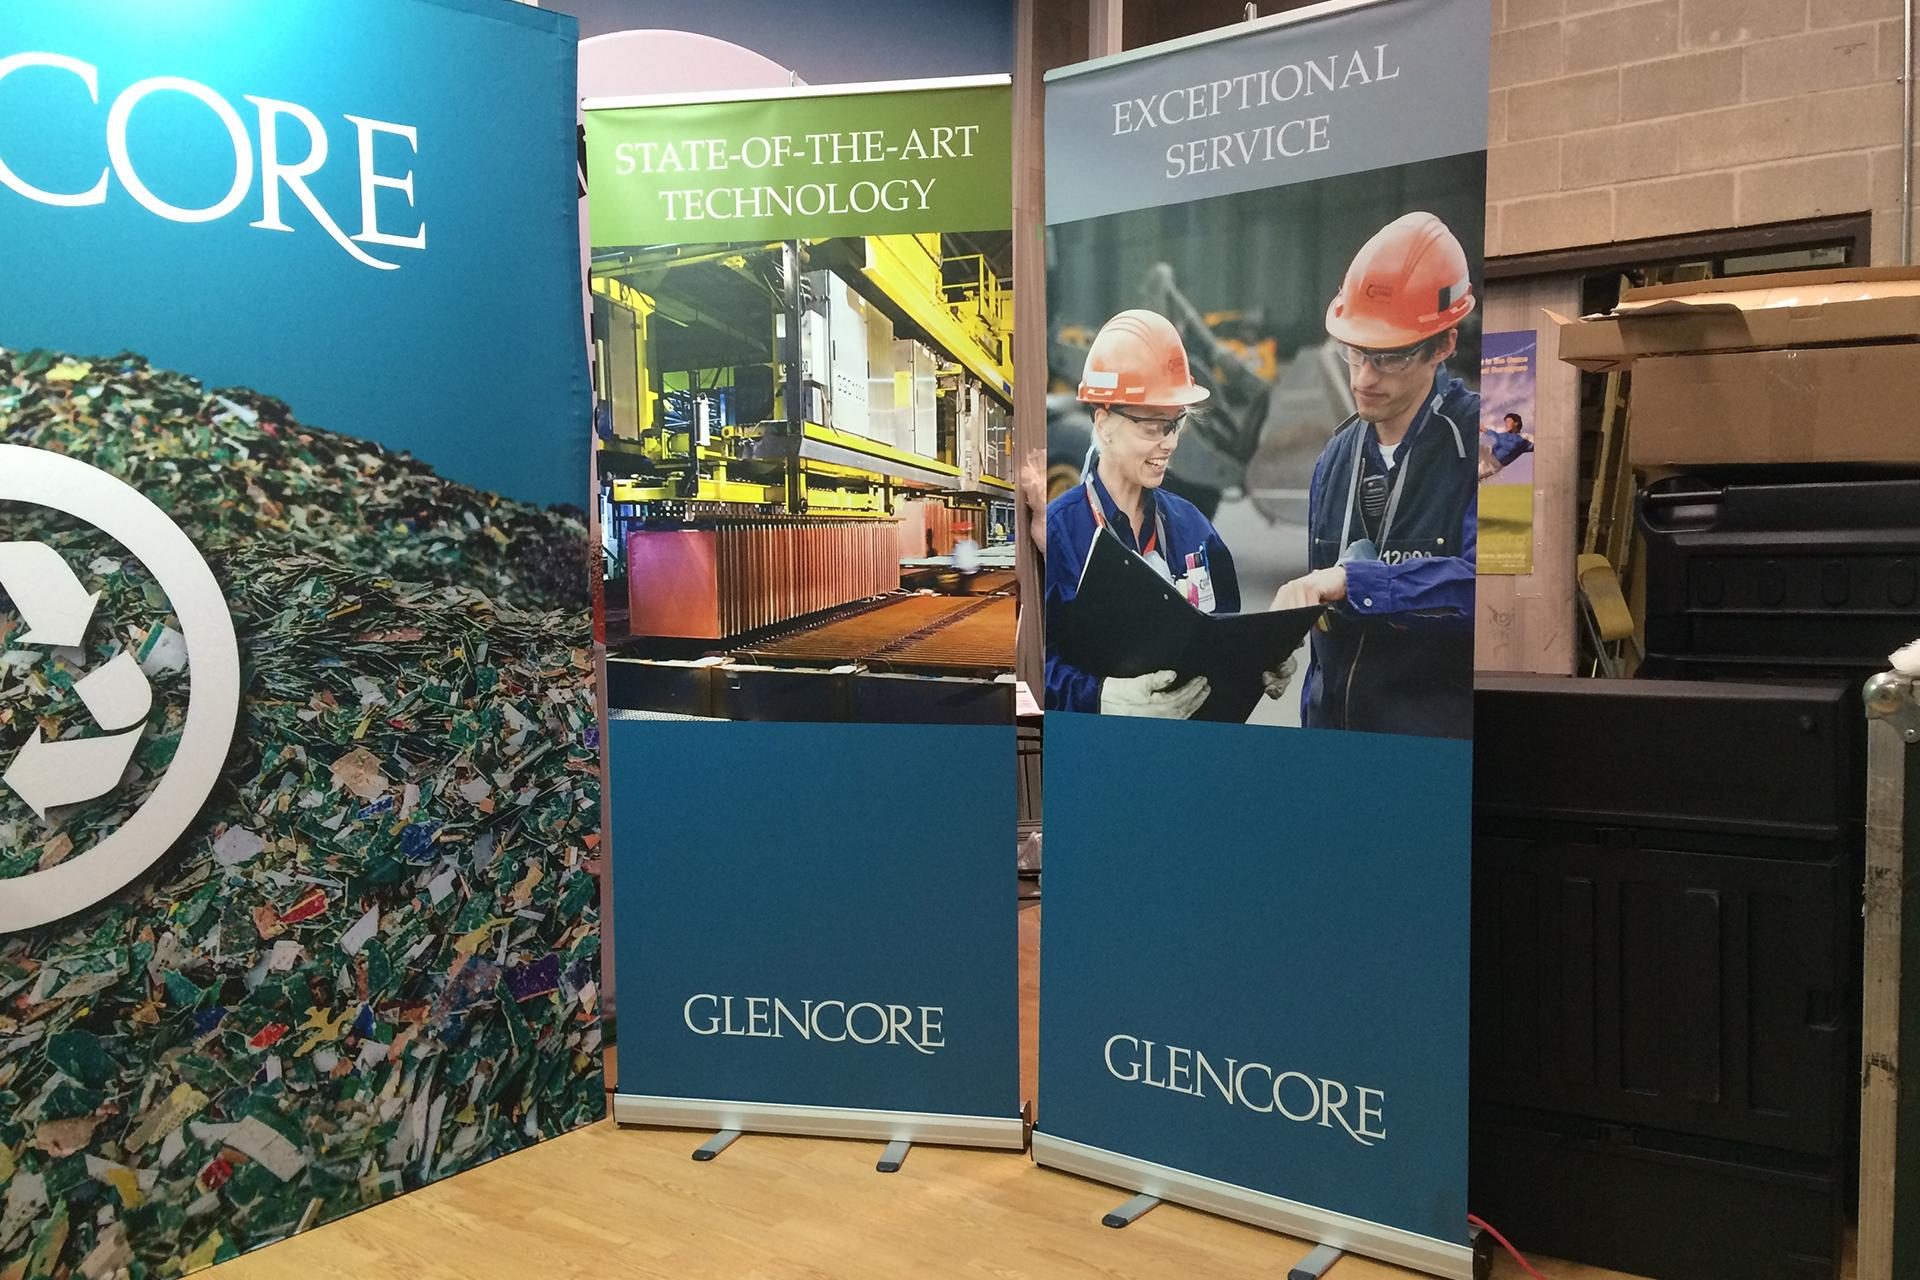 Glencore New Exhibit Campaign